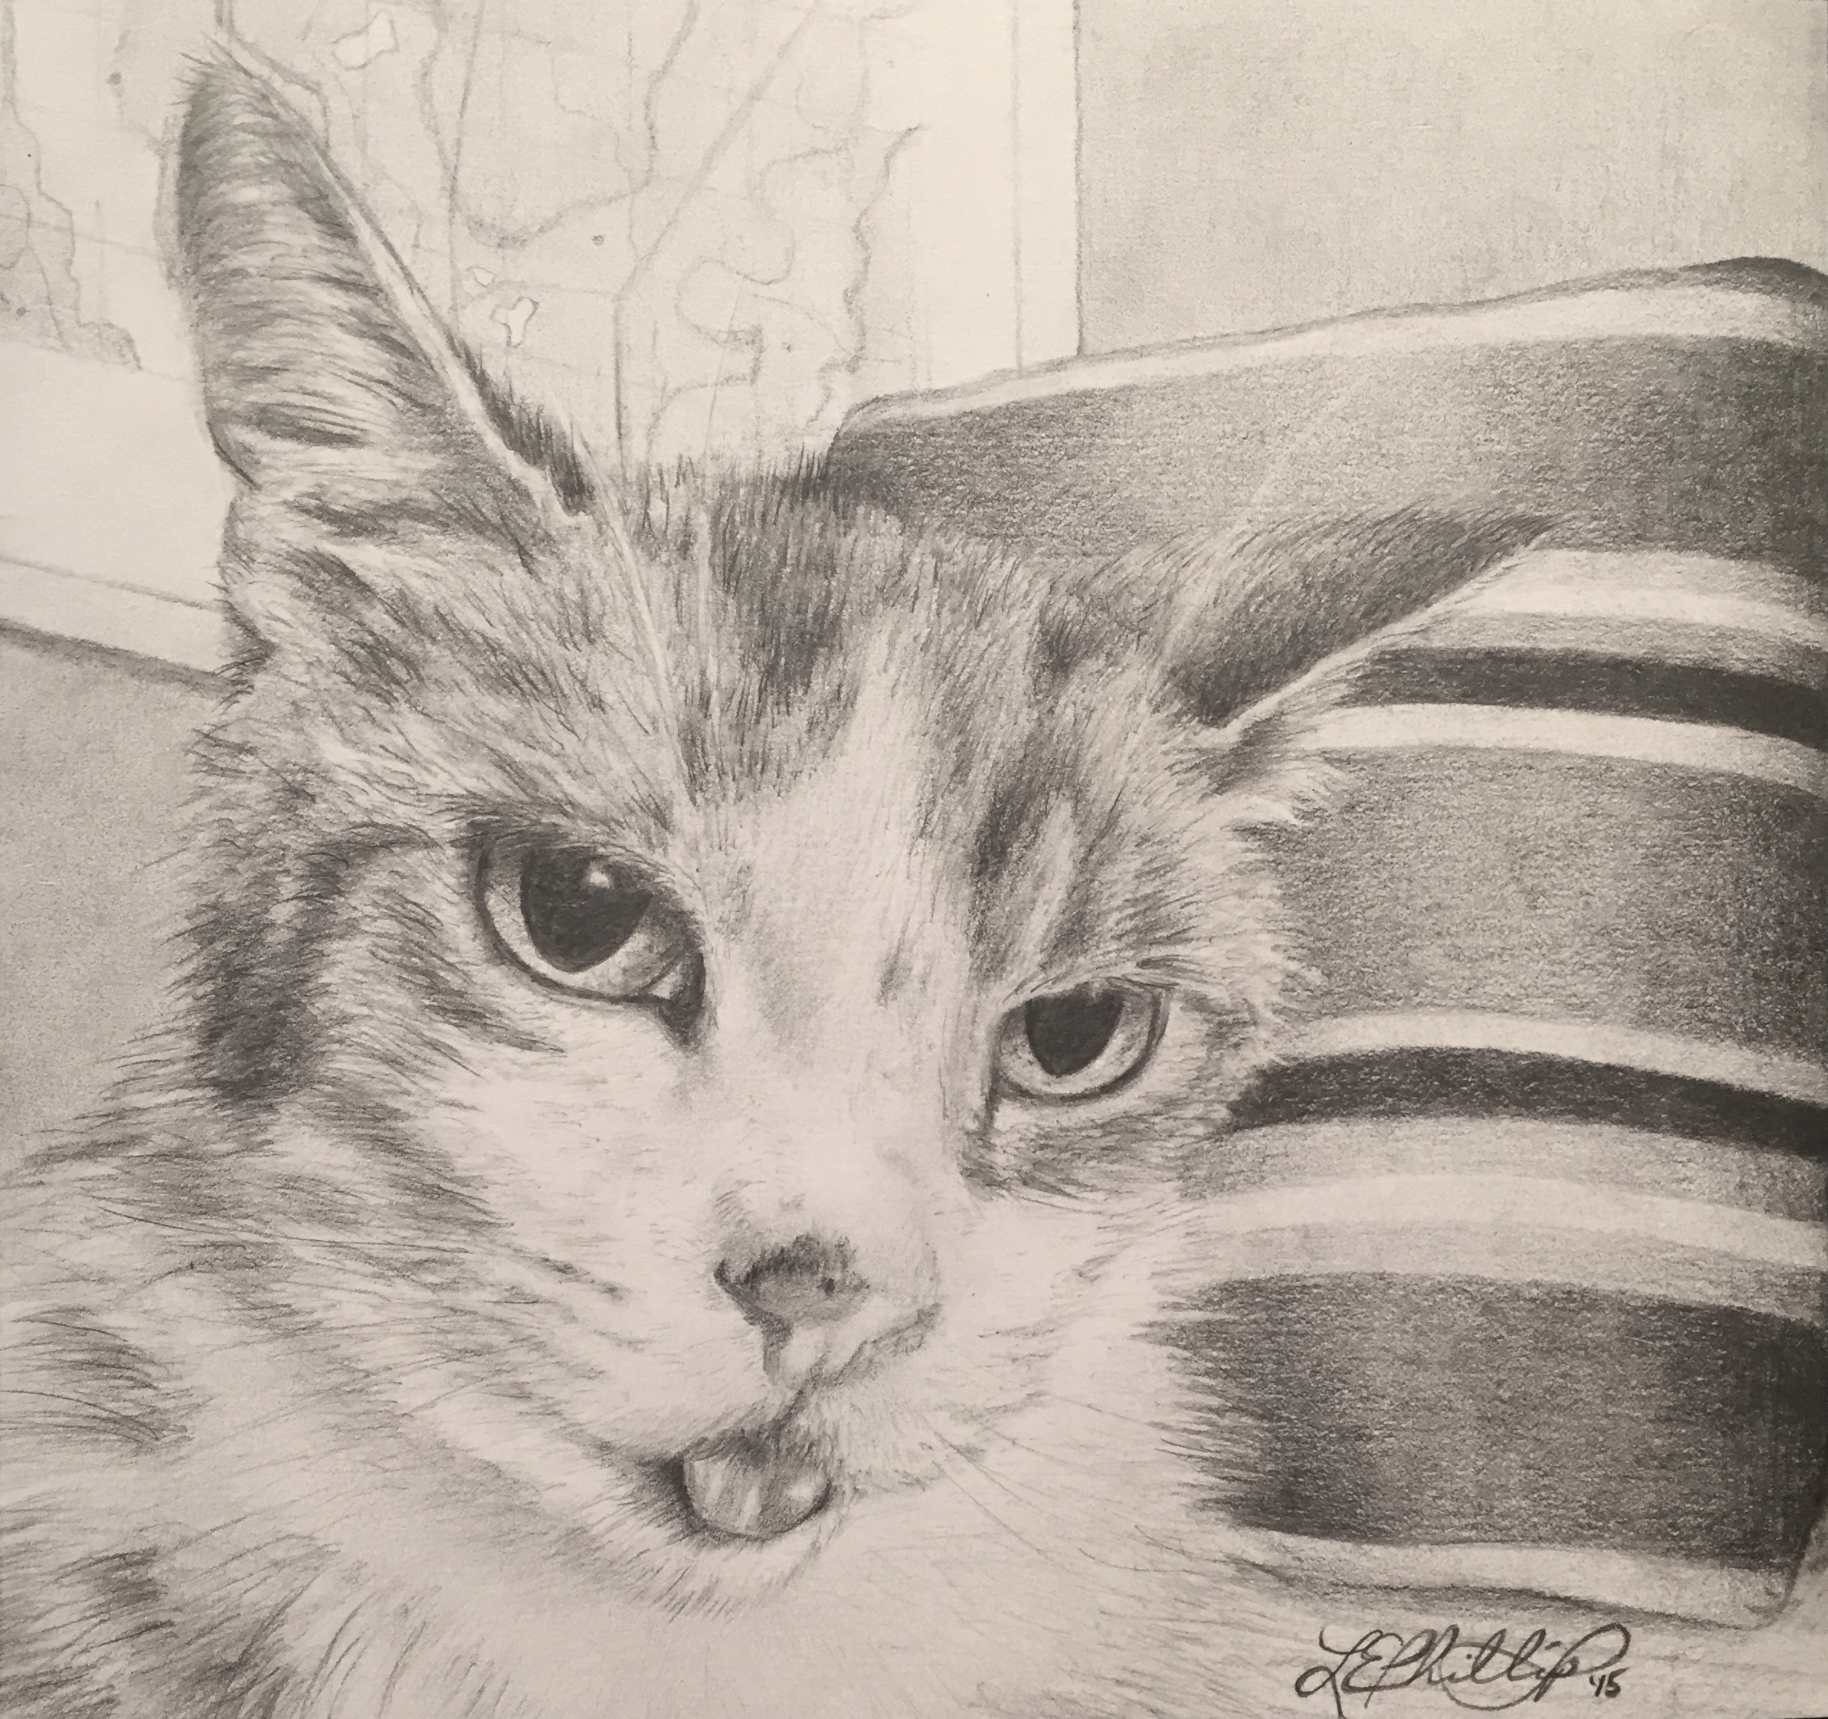 RUSSELL    Meet Russell;the crankiest feline I've had the pleasure of knowing.He was the (somewhat) patient subject of this drawing, which I ended up giving to his family following his passing. Russell had a pretty vibrant history, as far as cats go.Having paid the kitten premium at the Humane Society for this little guy who was waiting for the rest of his teeth to come in,the owners were in for a surprise at his first vet visit. As it turns out, this kitty was a malnourished senior at ten years old,and was actually losing teeth rather than waiting for them to come in. You'll notice he's sticking out his tongue... Given his lack of teeth,that's not by choice.You were worth every penny, Russ-cat.